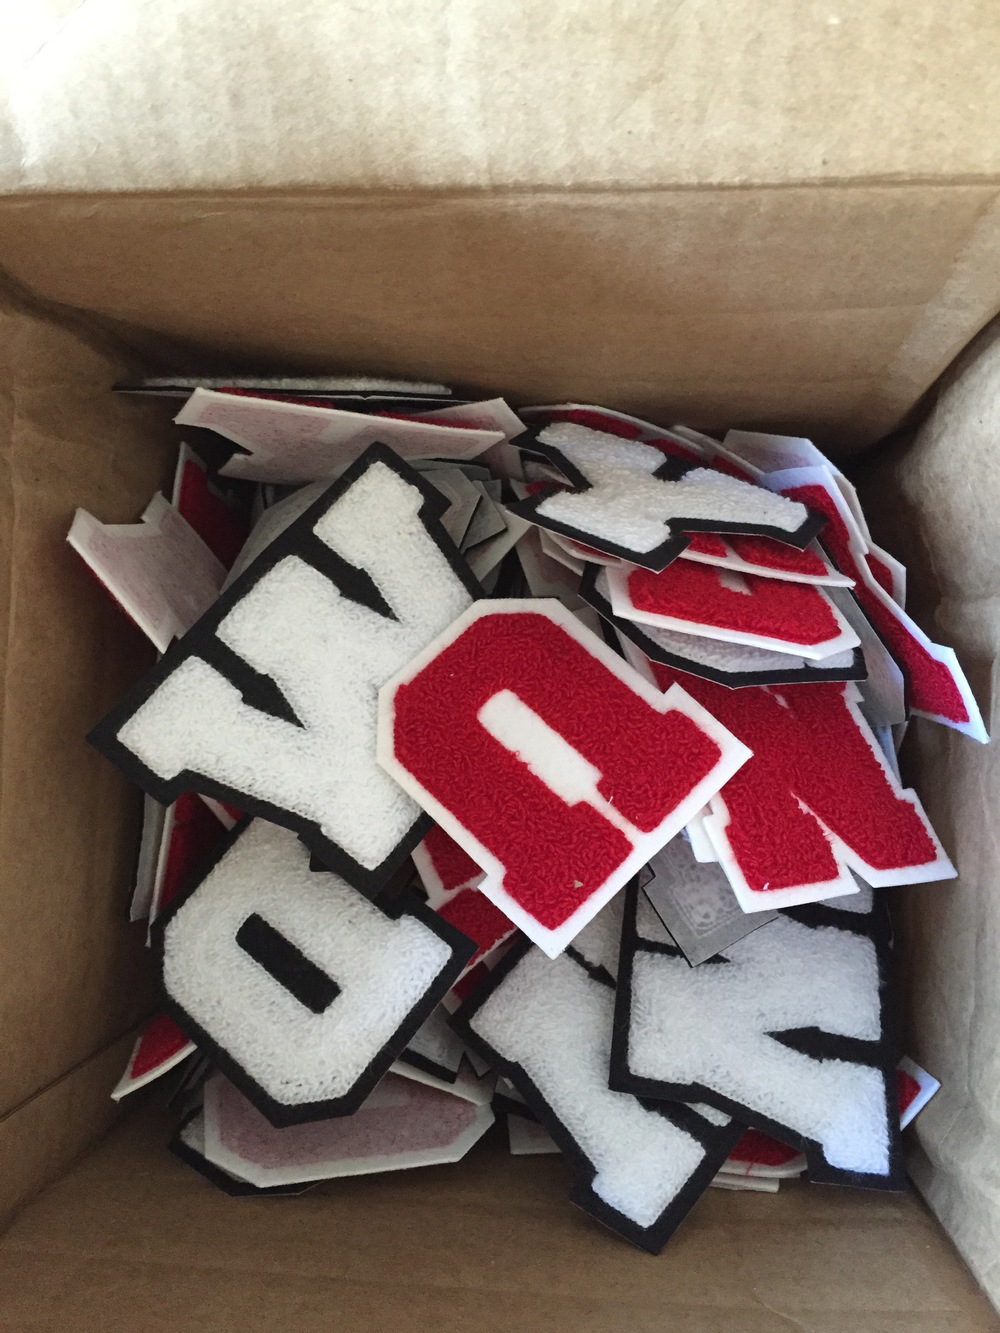 First box of Varsity Letter patches arrives from the USA. It's happening!